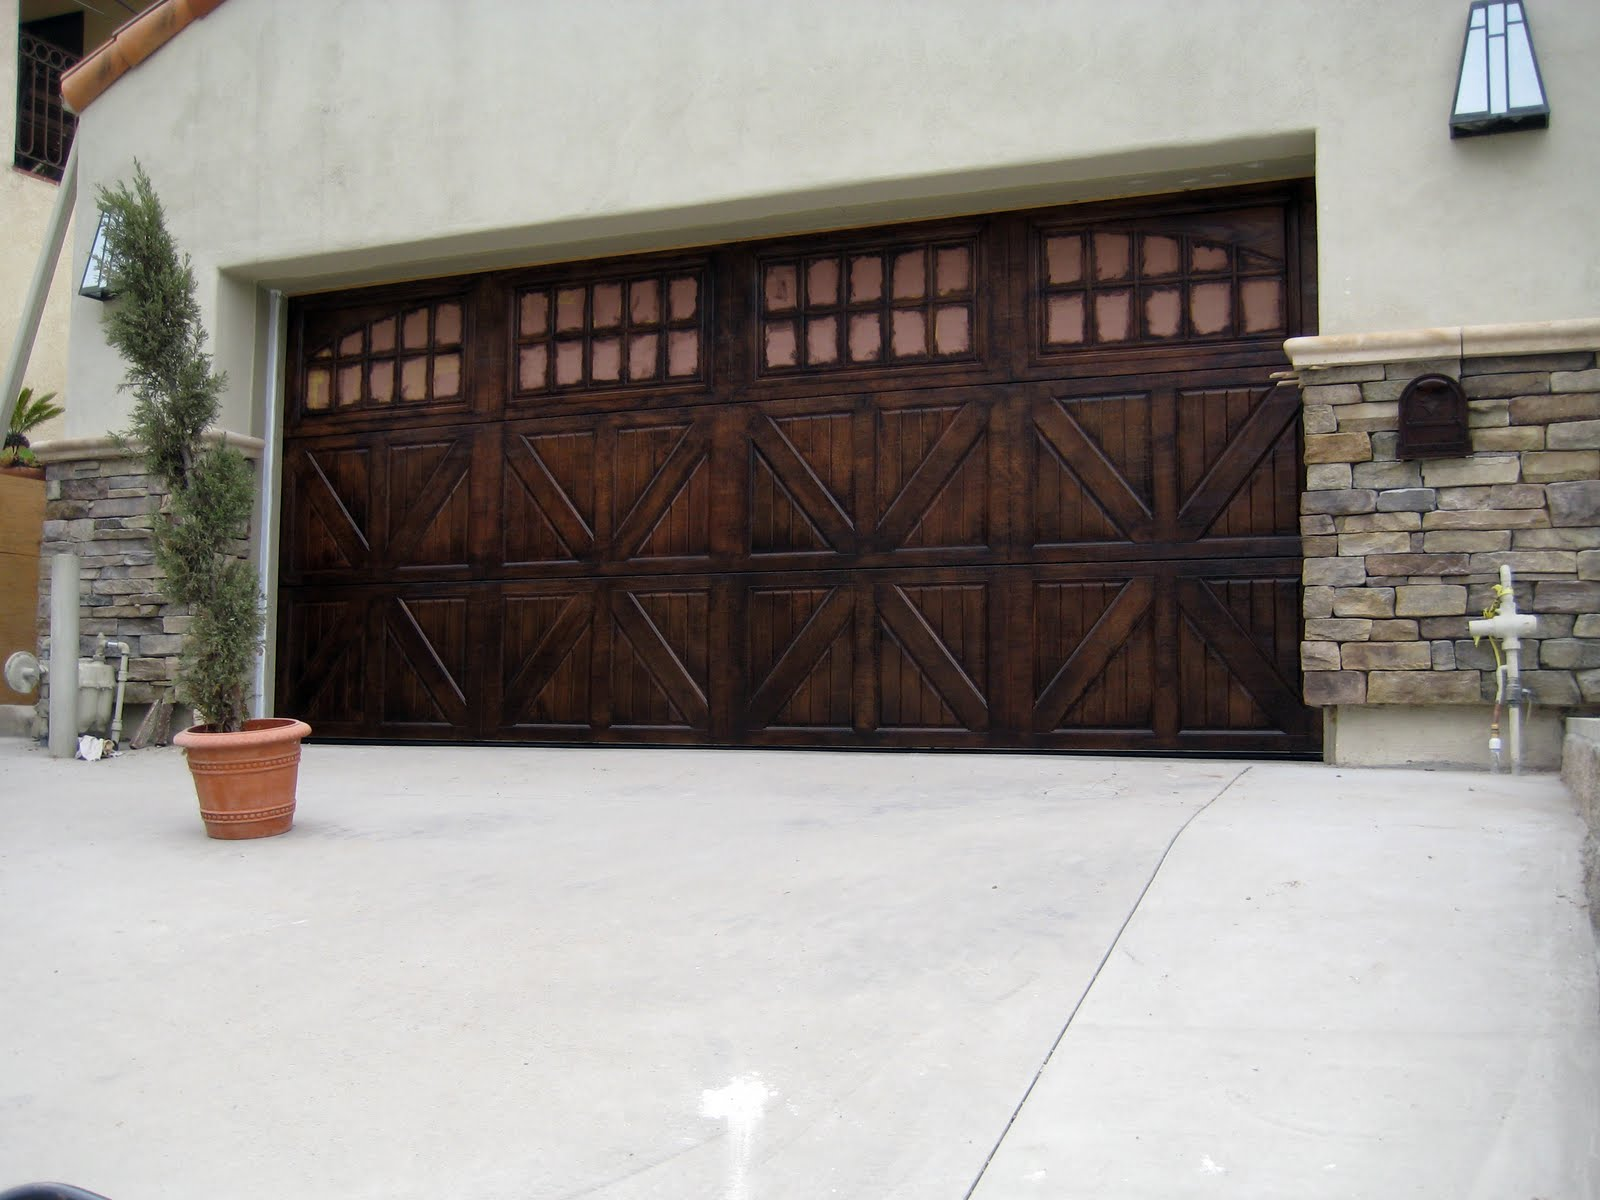 Faux wood painted garage doors - A Client S Door Faux Painted By Eitak Design Me To Look Like A Wood Door Over A Previously Painted Base Coat Please Excuse The Bad Iphone Pic And The